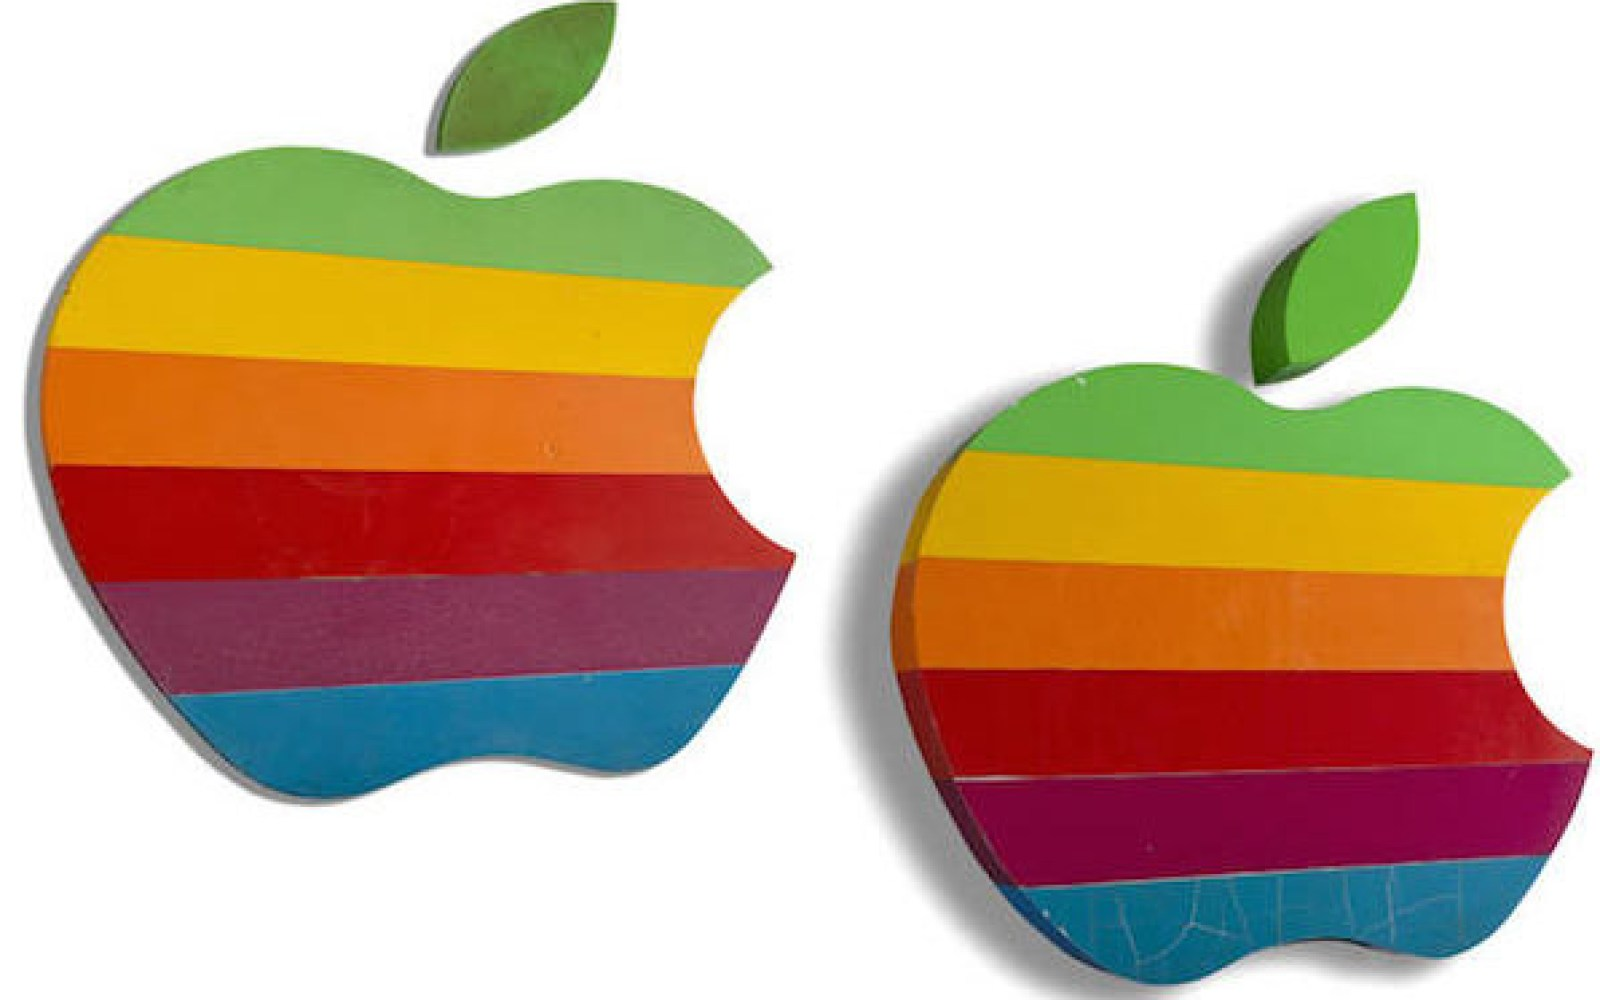 Fancy a piece of Apple history? Apple's original rainbow logo signs being auctioned